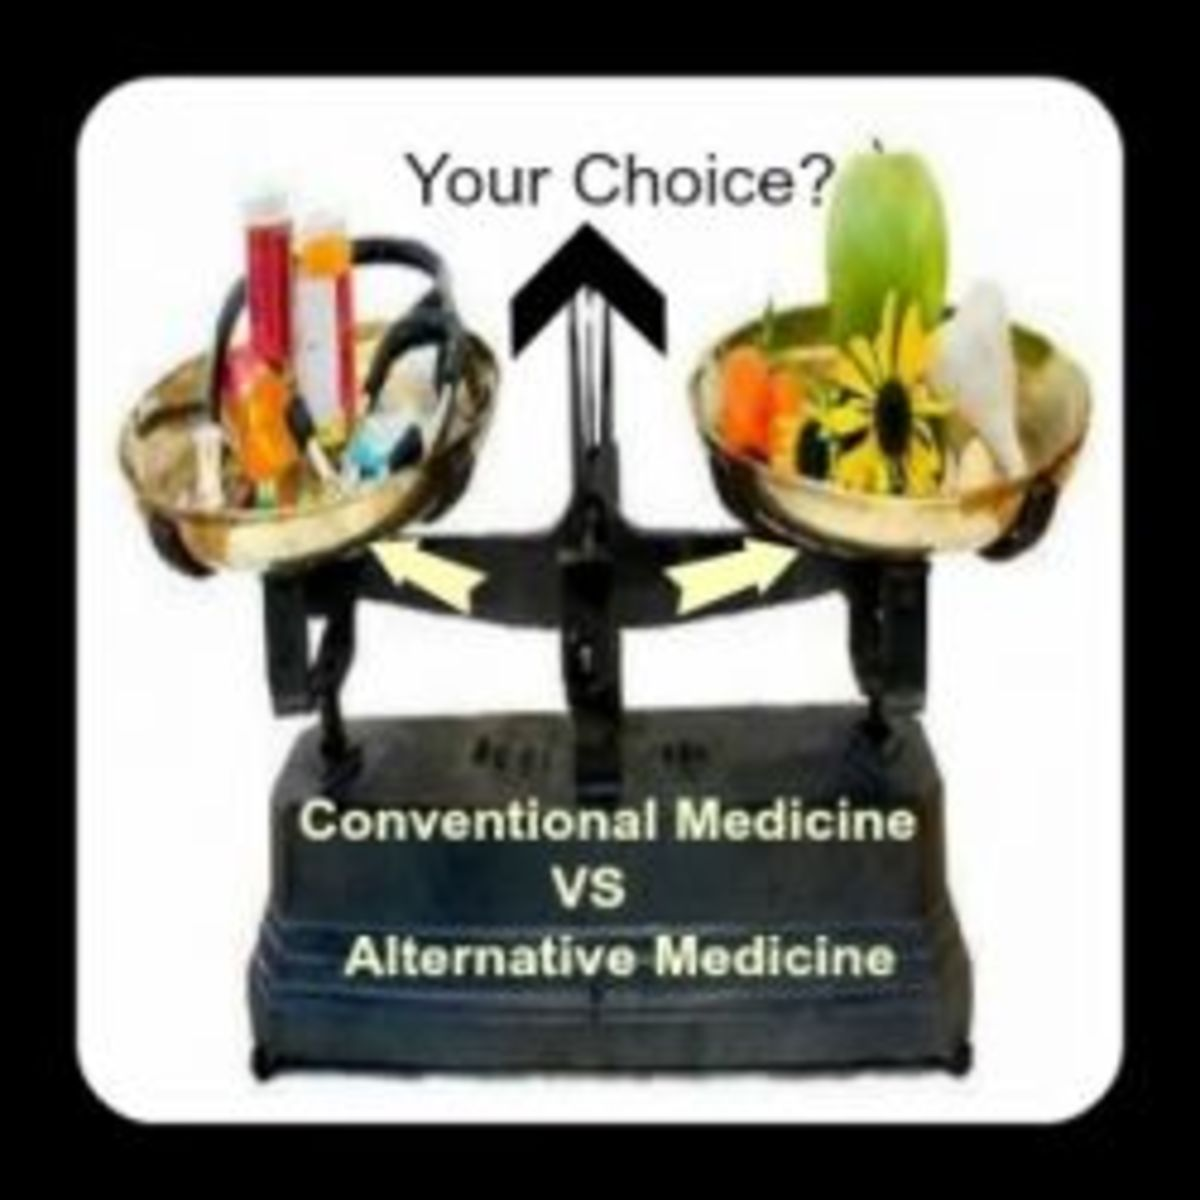 holistic medicine vs modern medicine Western medicine vs alternative medicine - can you tell me how is alternative medicine more holistic than western medicine alternative medicine the.